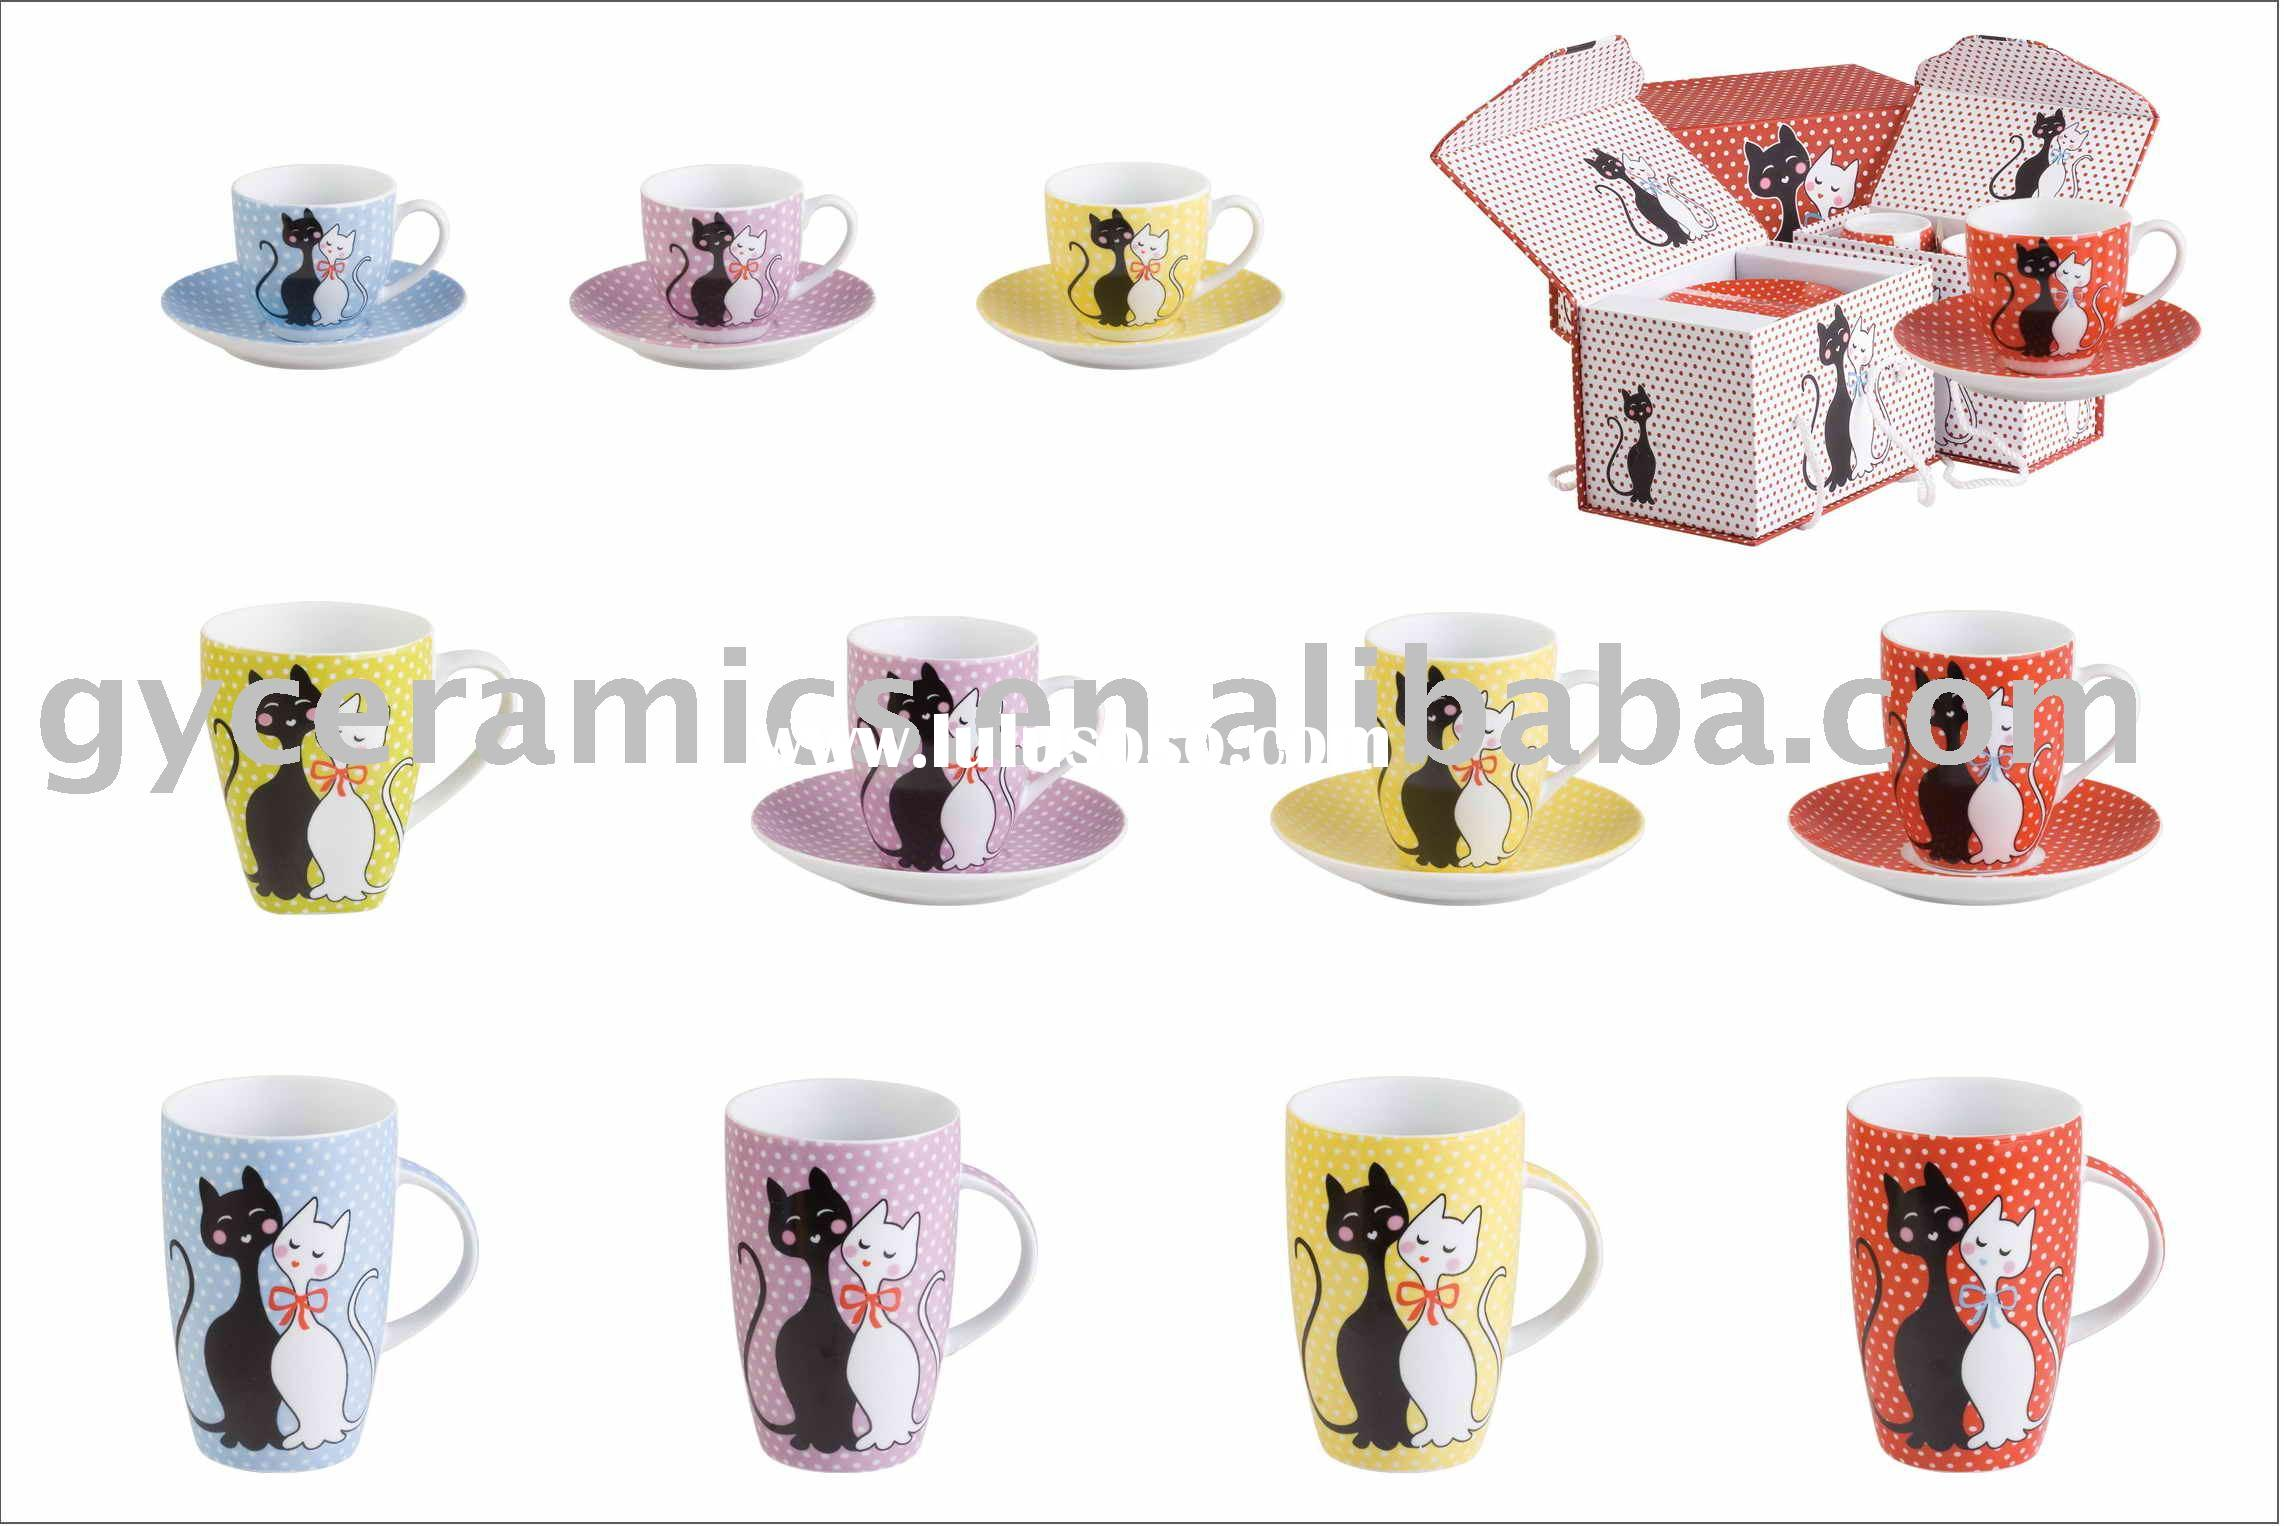 S/6 coffee/tea cup and saucer, S/2 mugs in gift box